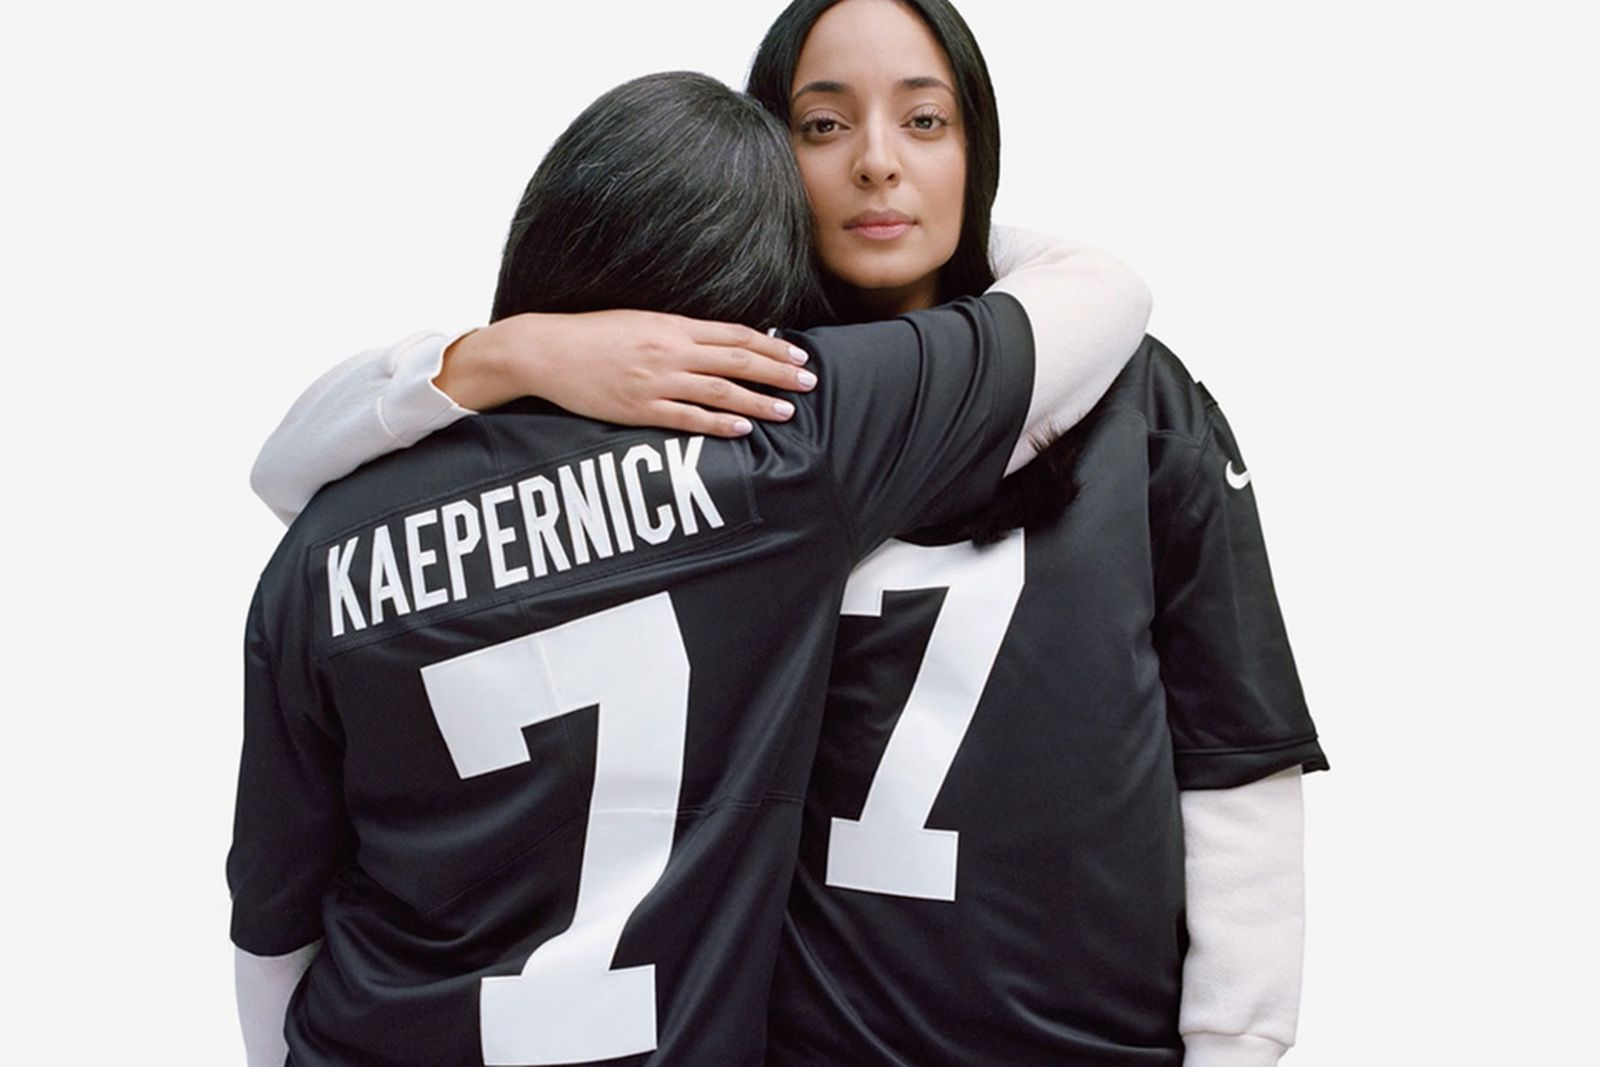 Nike Pays Tribute to Colin Kaepernick With Special Edition Jersey